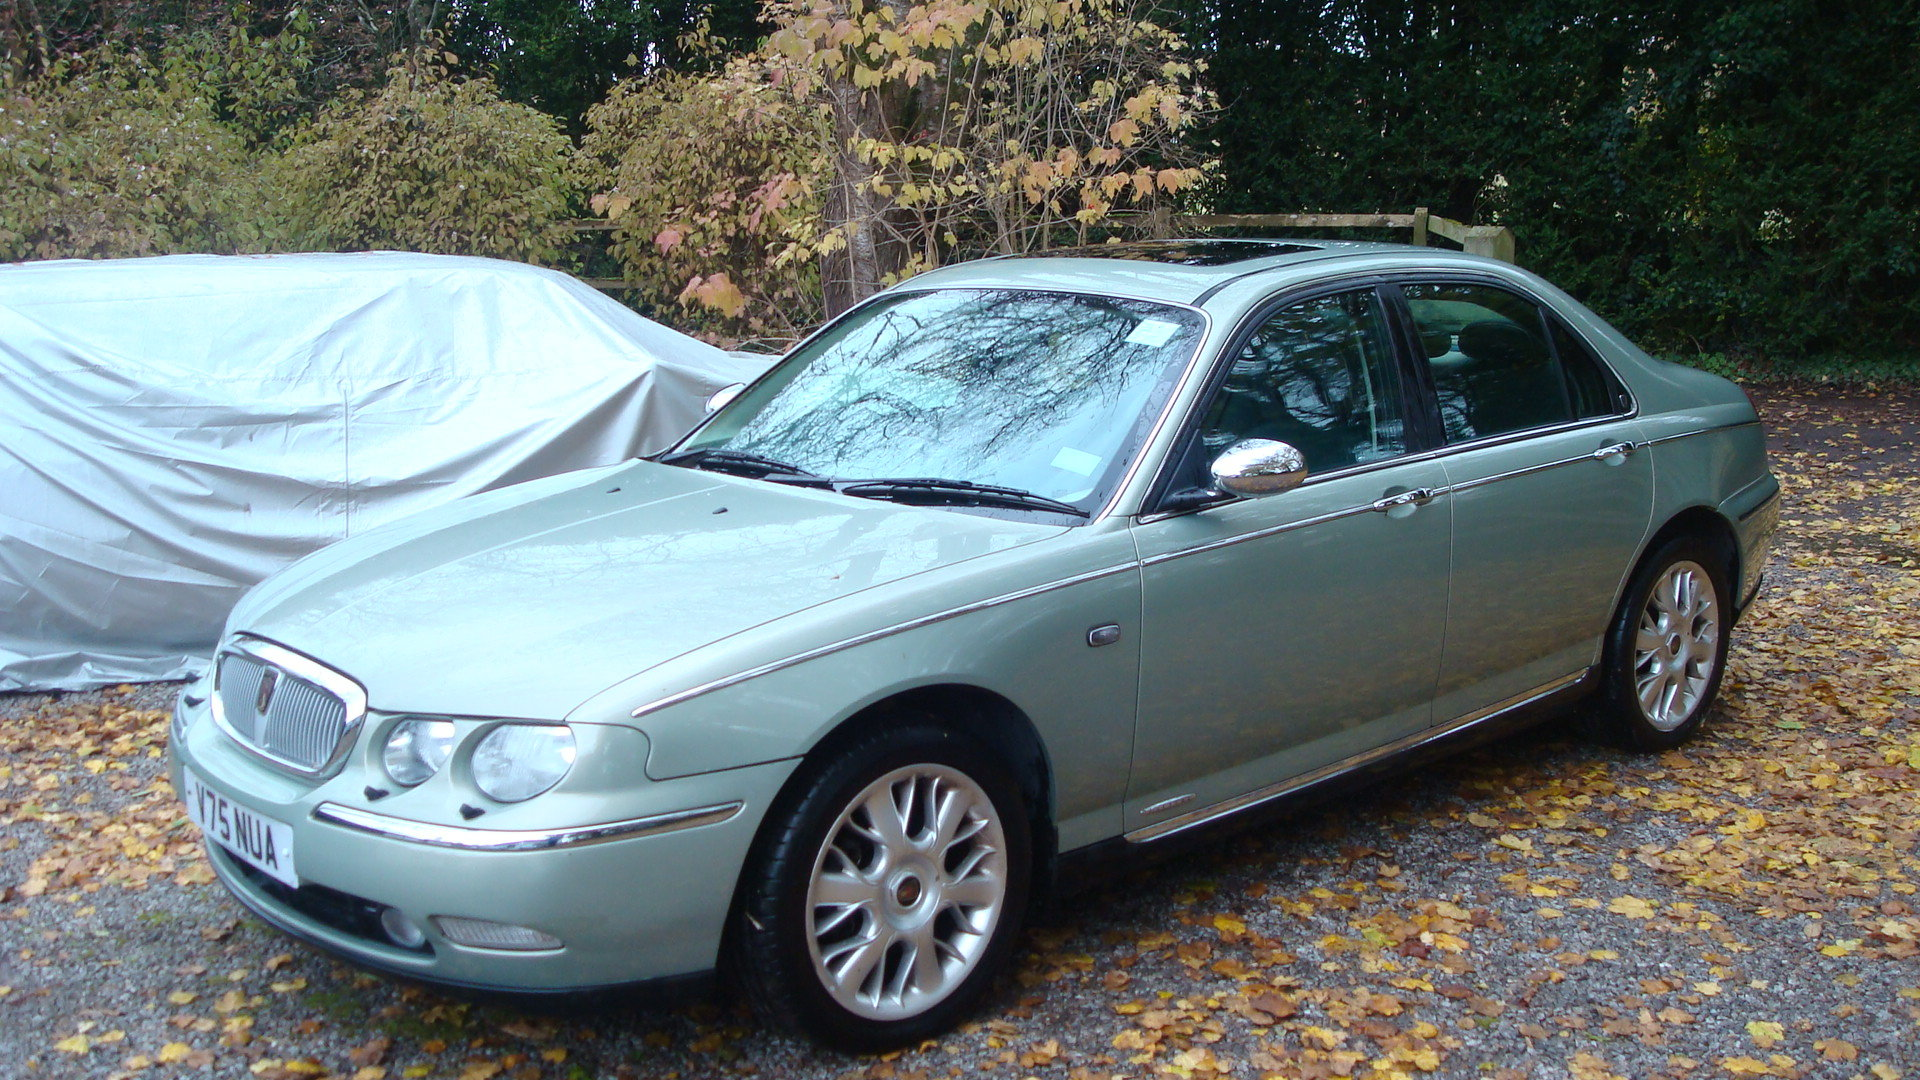 1999 Rover 75 2.5 V6 Connoisseur For Sale (picture 2 of 6)